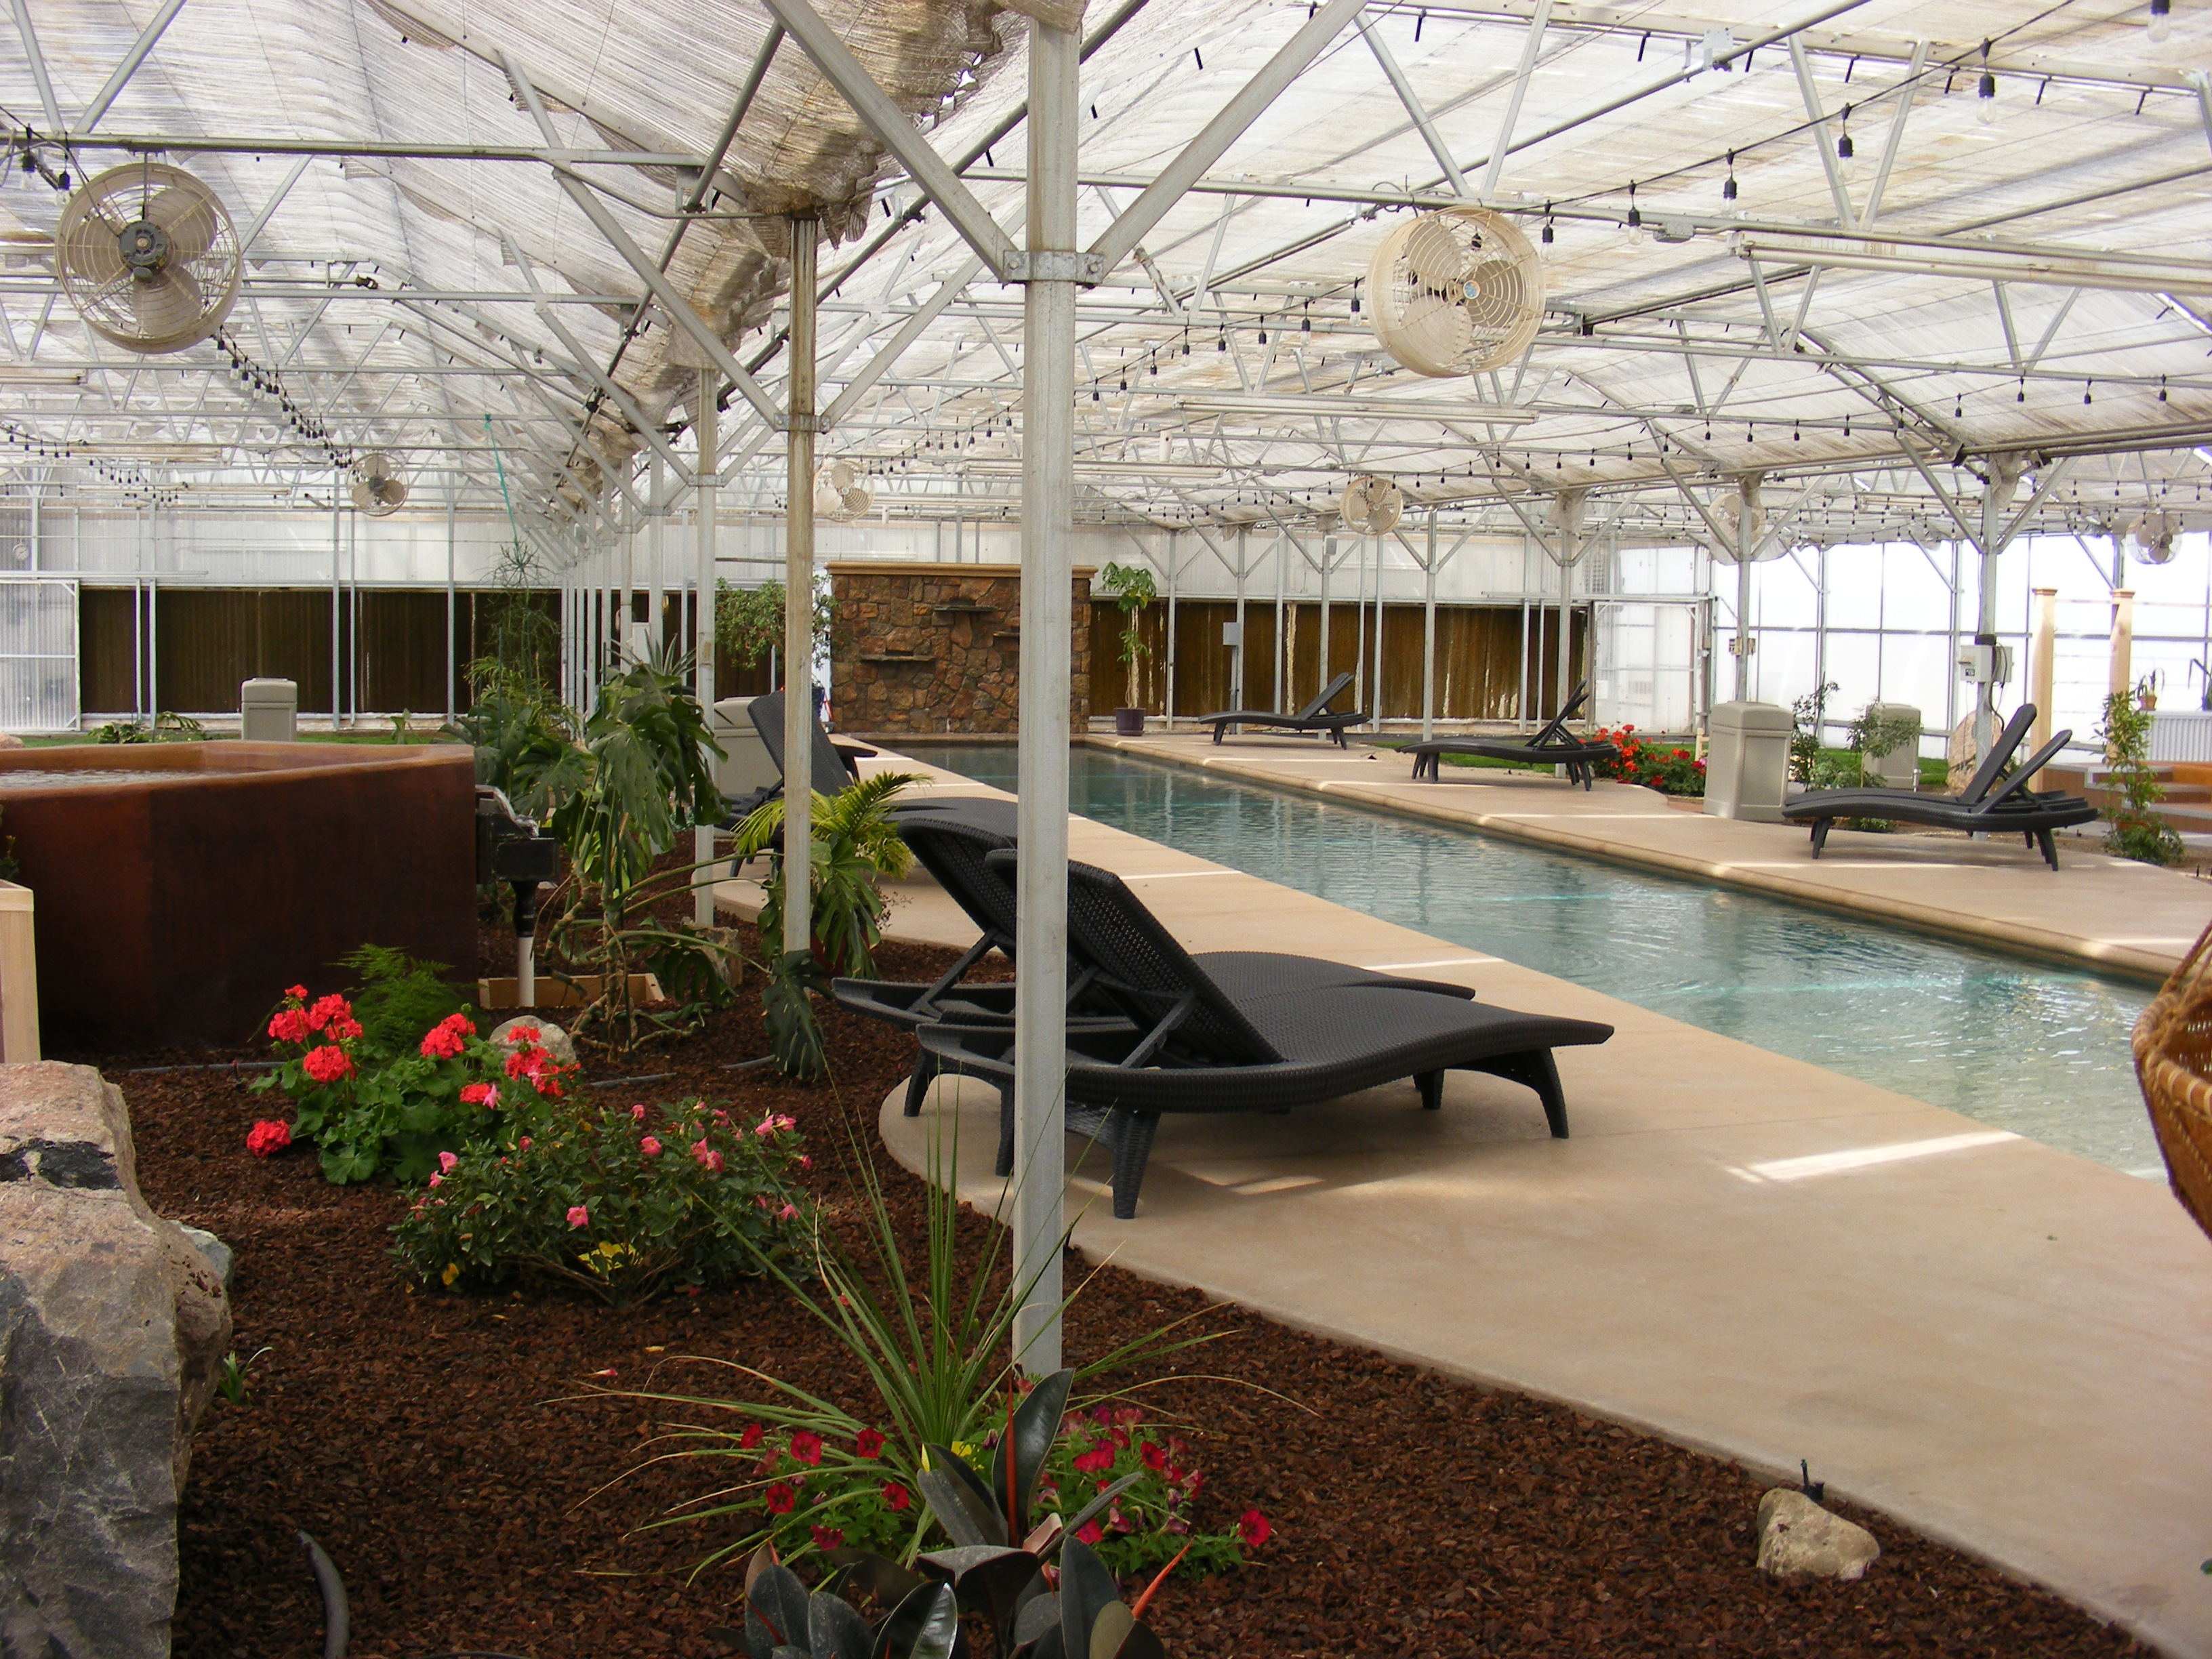 The Greenhouse at Sand Dunes Swimming Pool